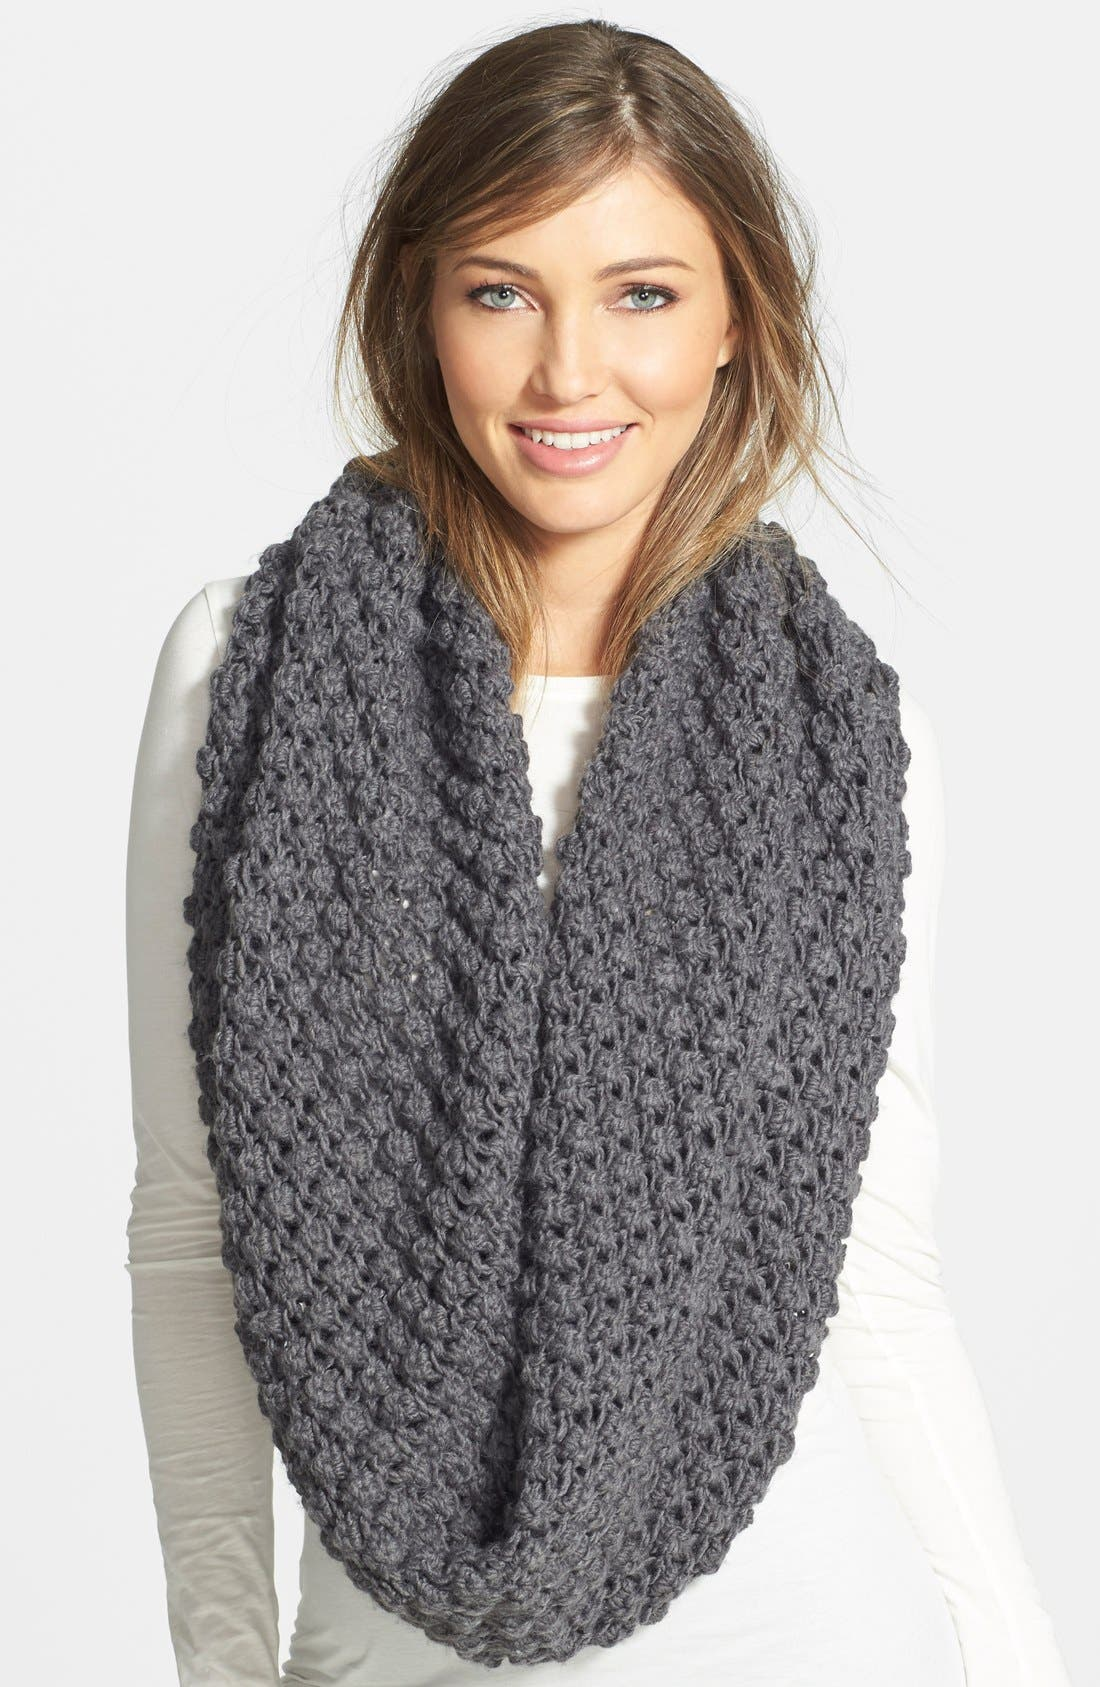 Alternate Image 1 Selected - Lole Popcorn Knit Maxi Infinity Scarf